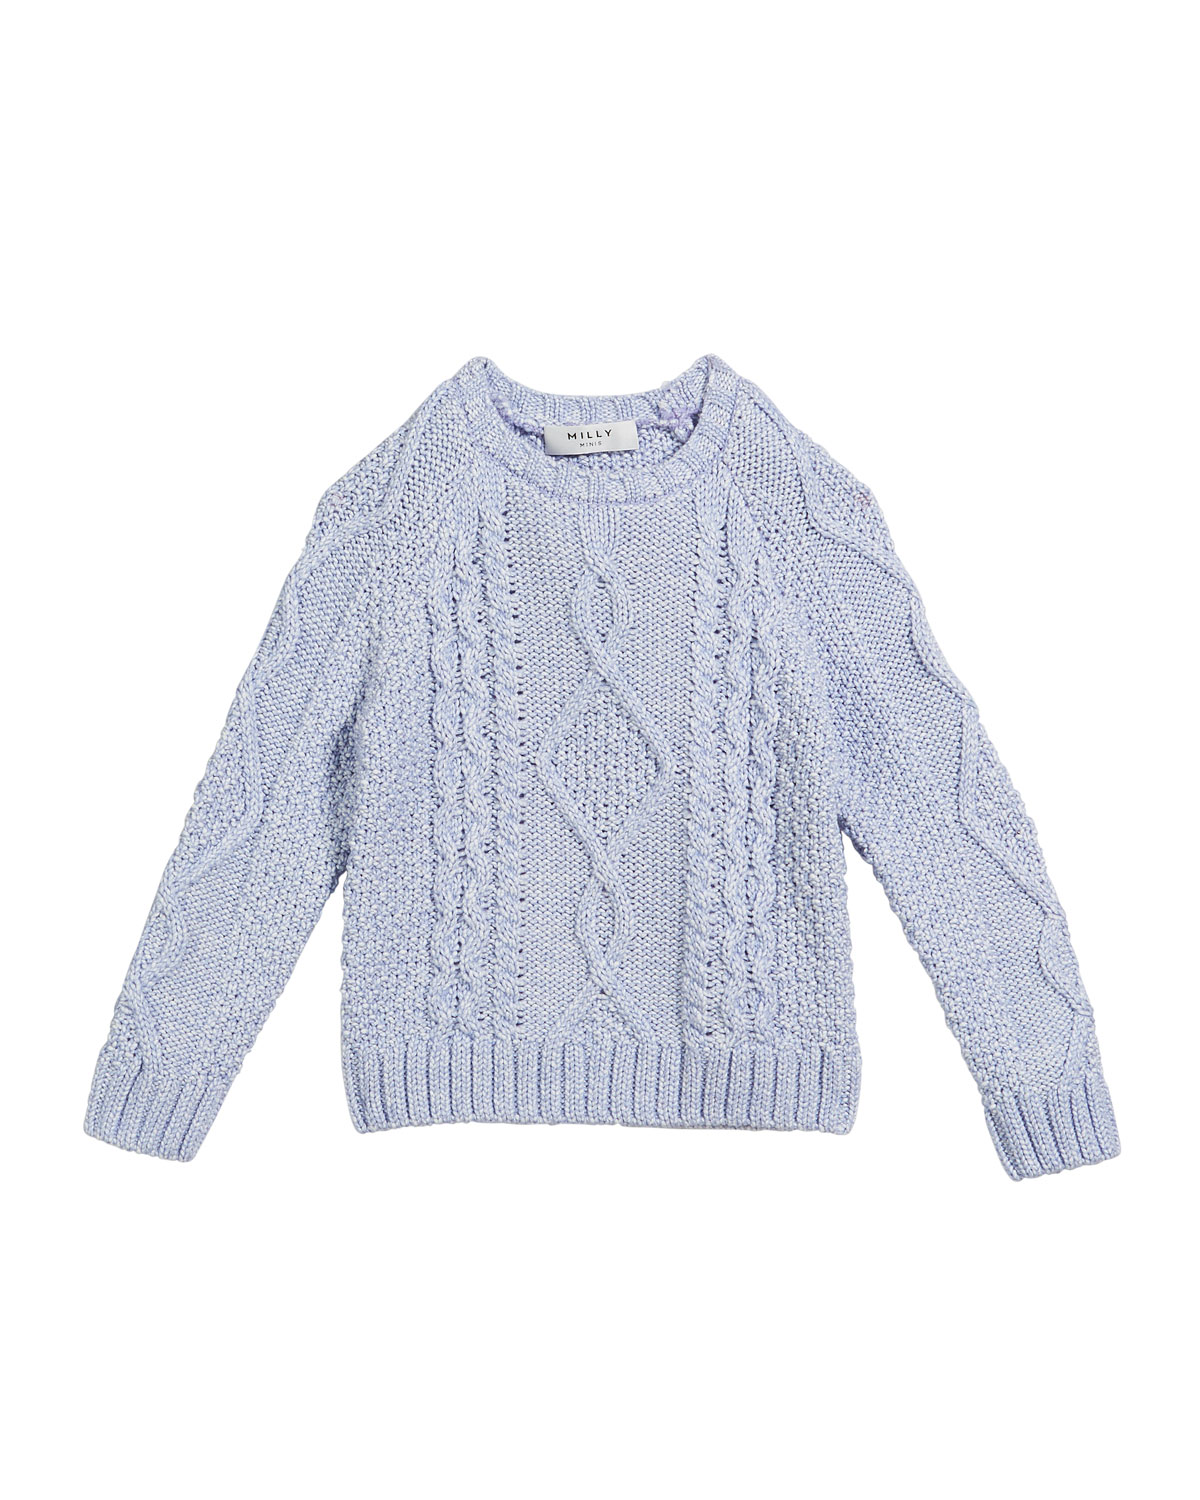 b0477f2cd32 Milly Minis Aran Cable-Knit Pullover Sweater